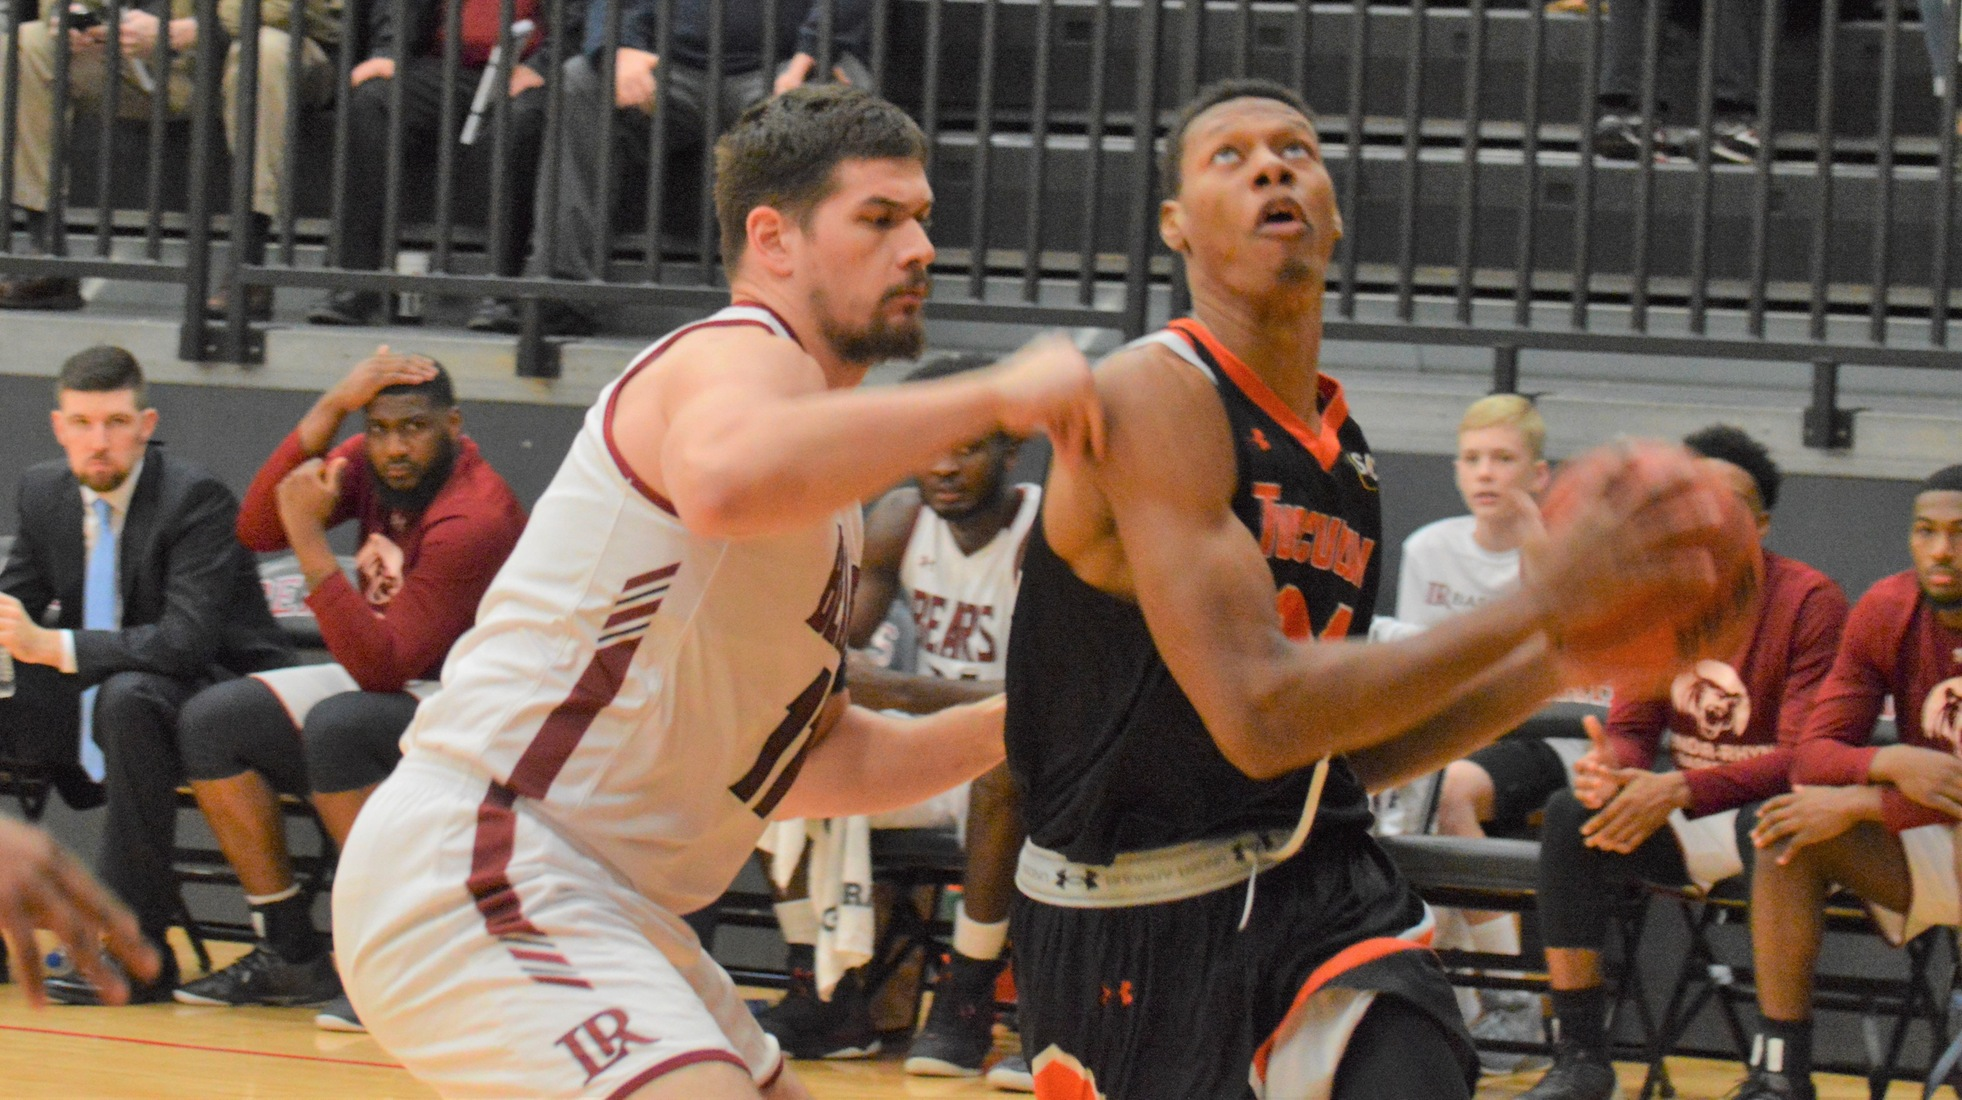 Brandon Mitchell scored a career-high 20 points in Tusculum's SAC road game at Lenoir-Rhyne